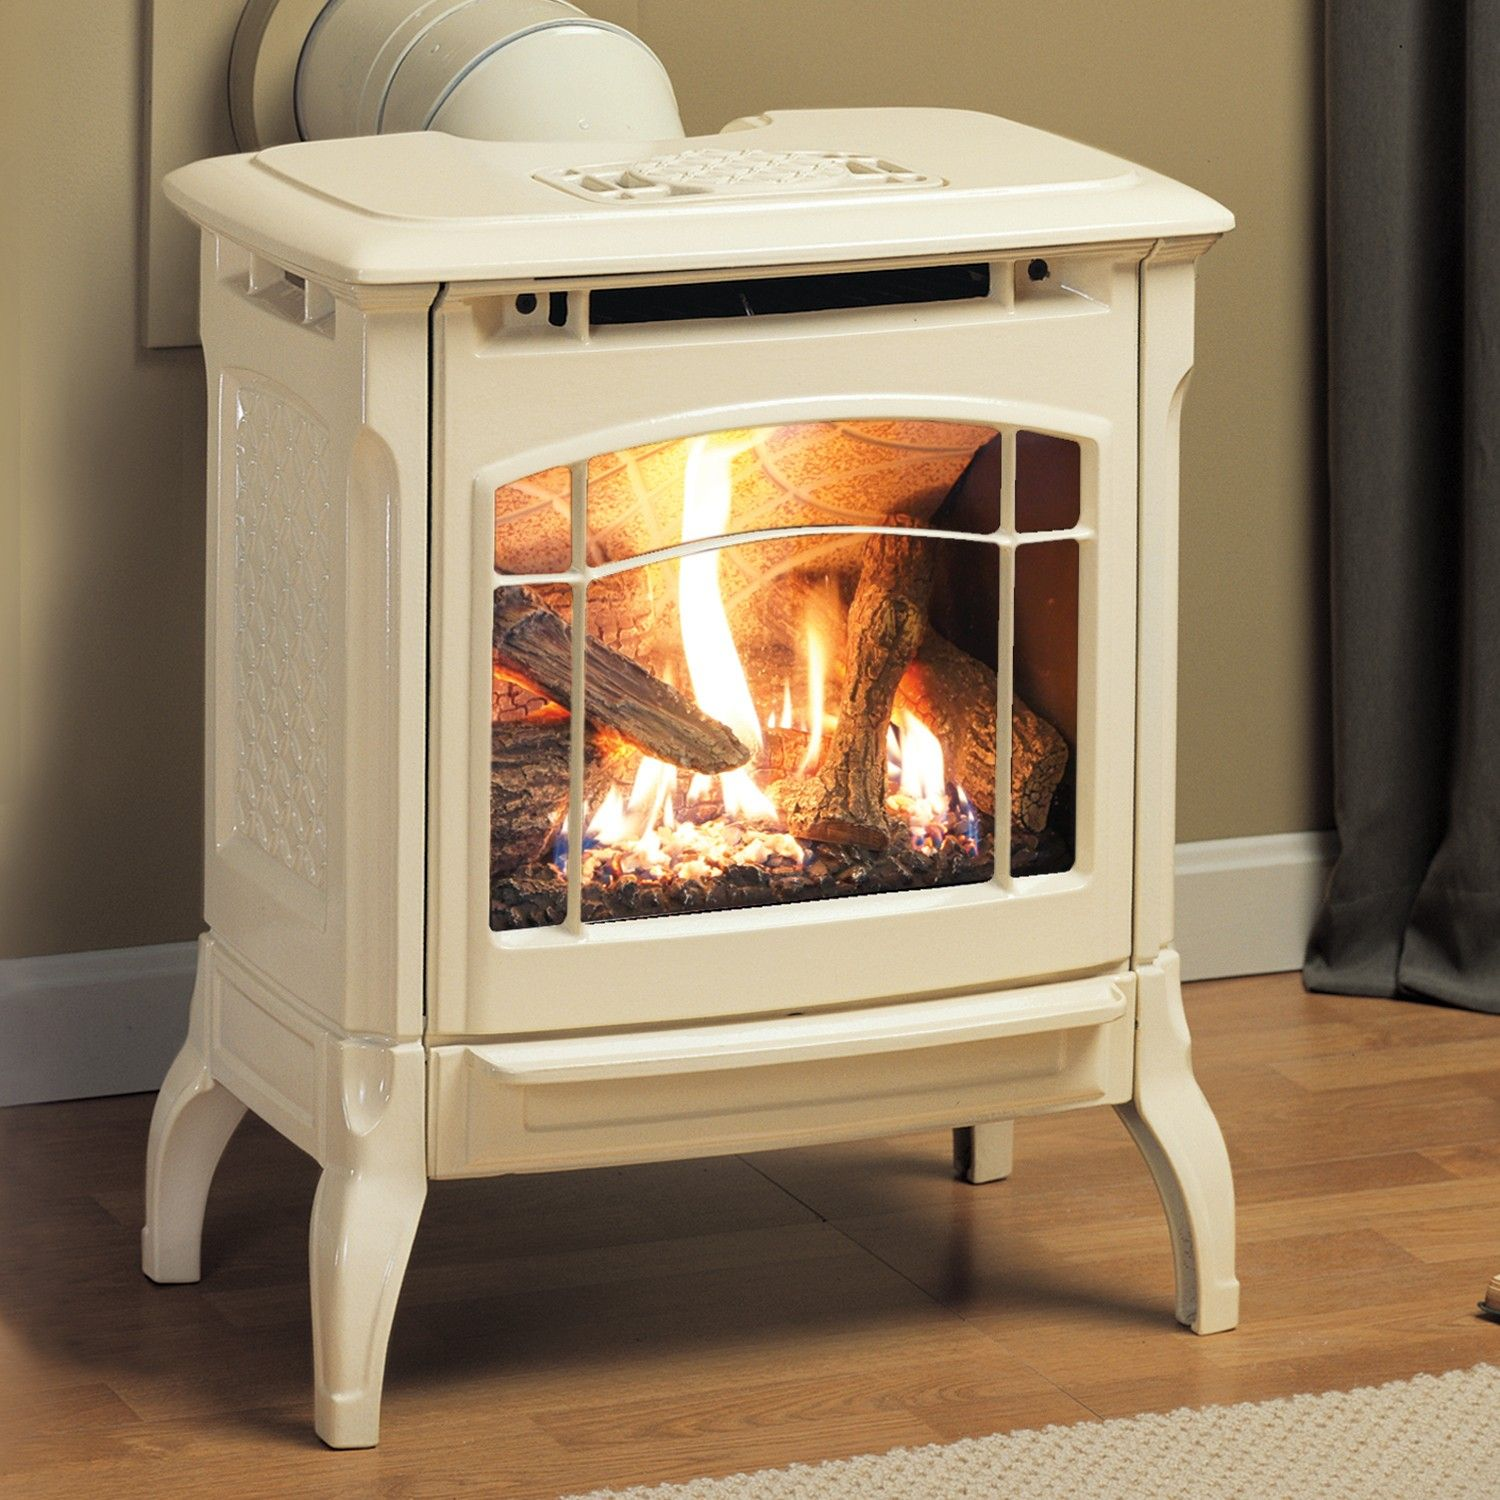 Small Room Gas Fireplace Small Gas Stove Fireplace Fireplace Design Ideas